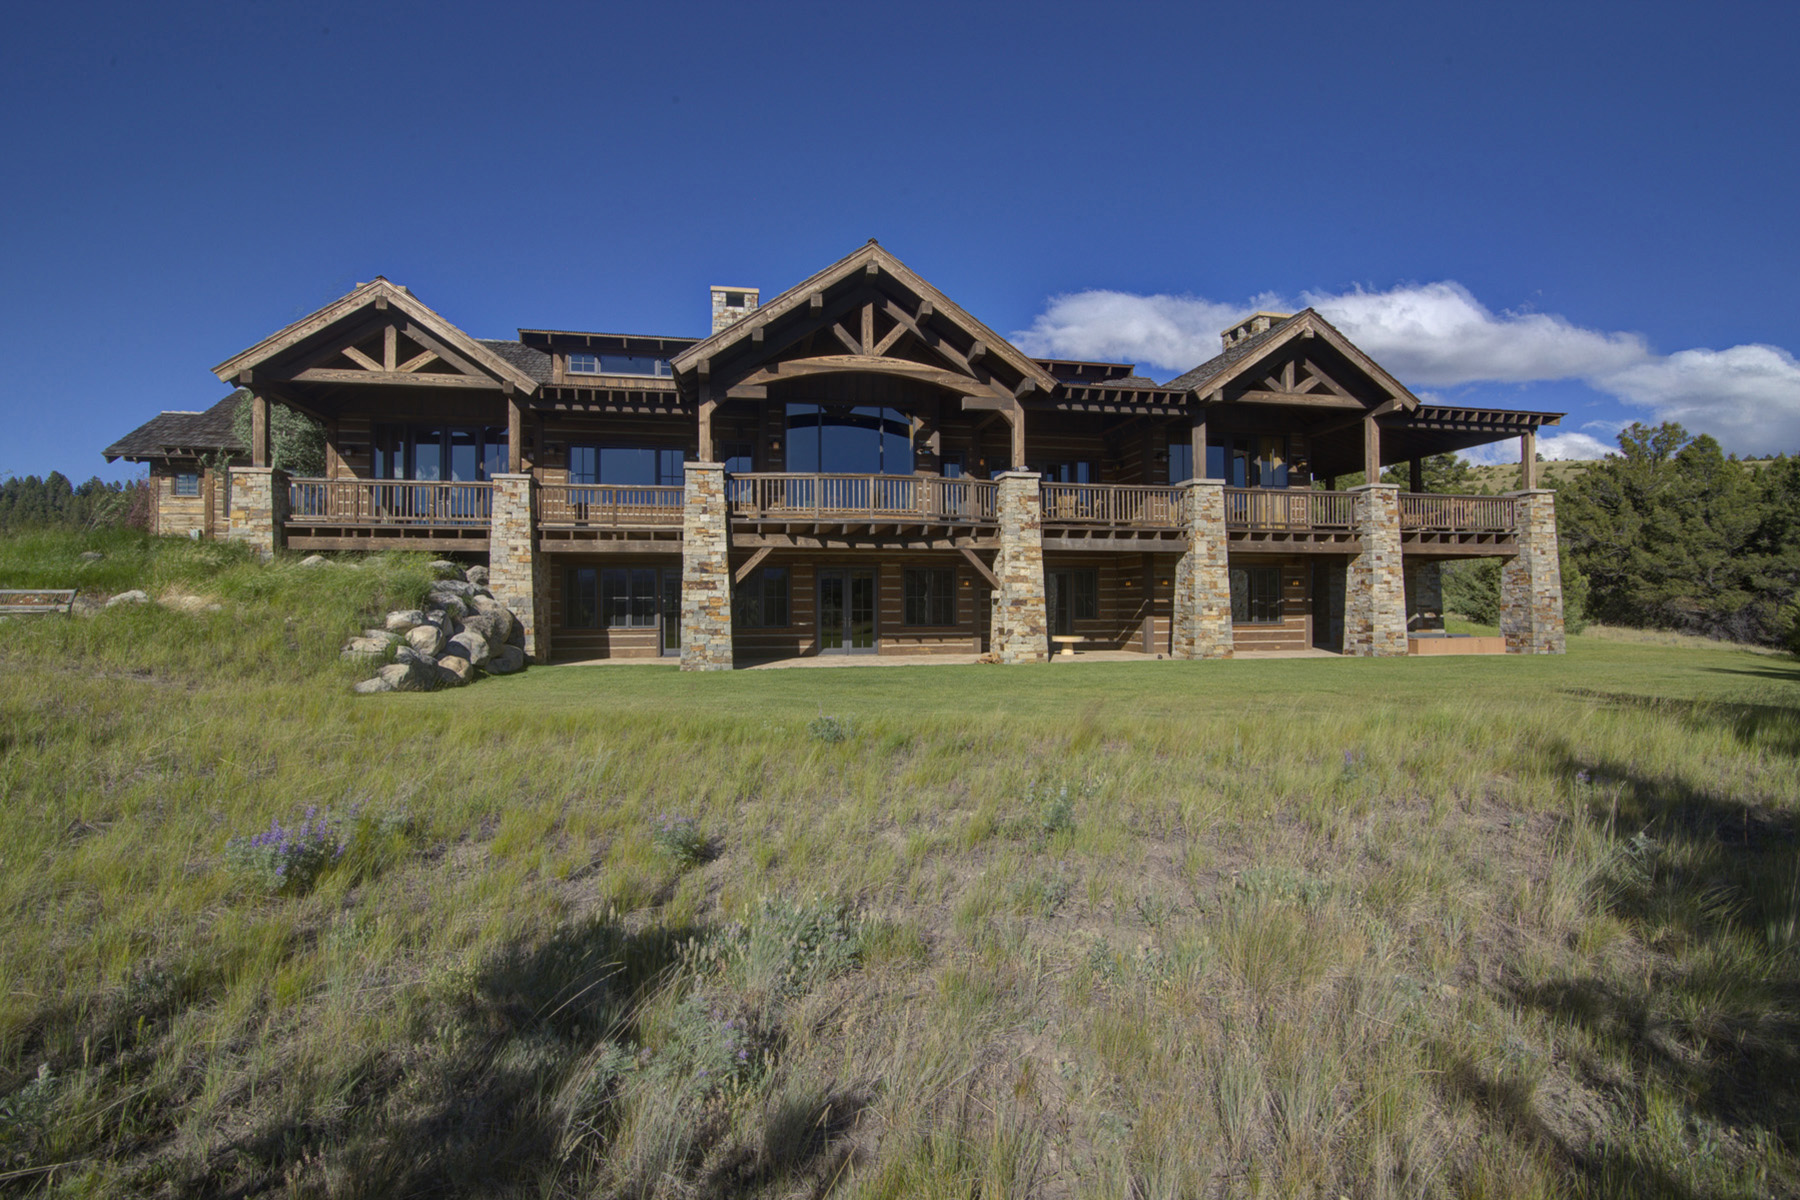 Single Family Home for Sale at 590 Dry Gulch Way , Deer Lodge, MT 59722 590 Dry Gulch Way Rock Creek Cattle Company, Deer Lodge, Montana, 59722 United States